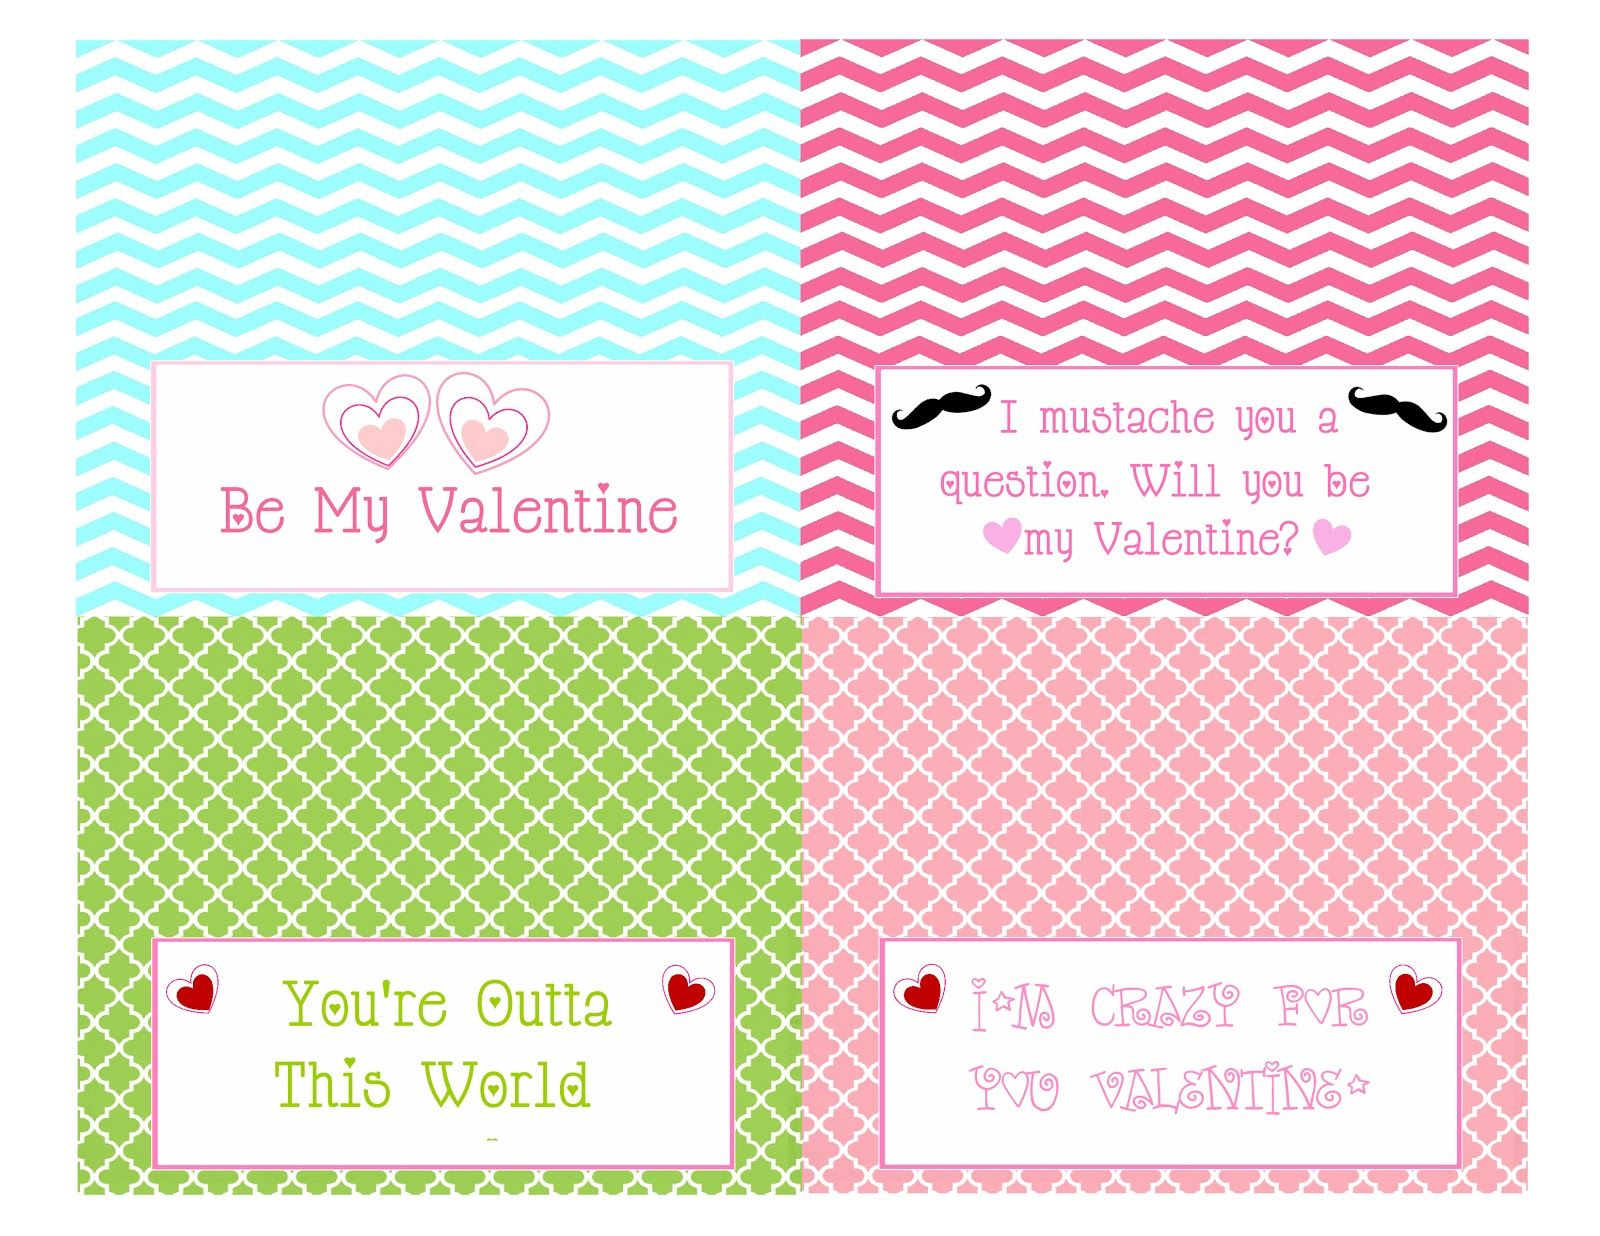 photograph about Free Printable Treat Bag Toppers titled S N Prepare: Valentines Deal with bag topper (Absolutely free printables